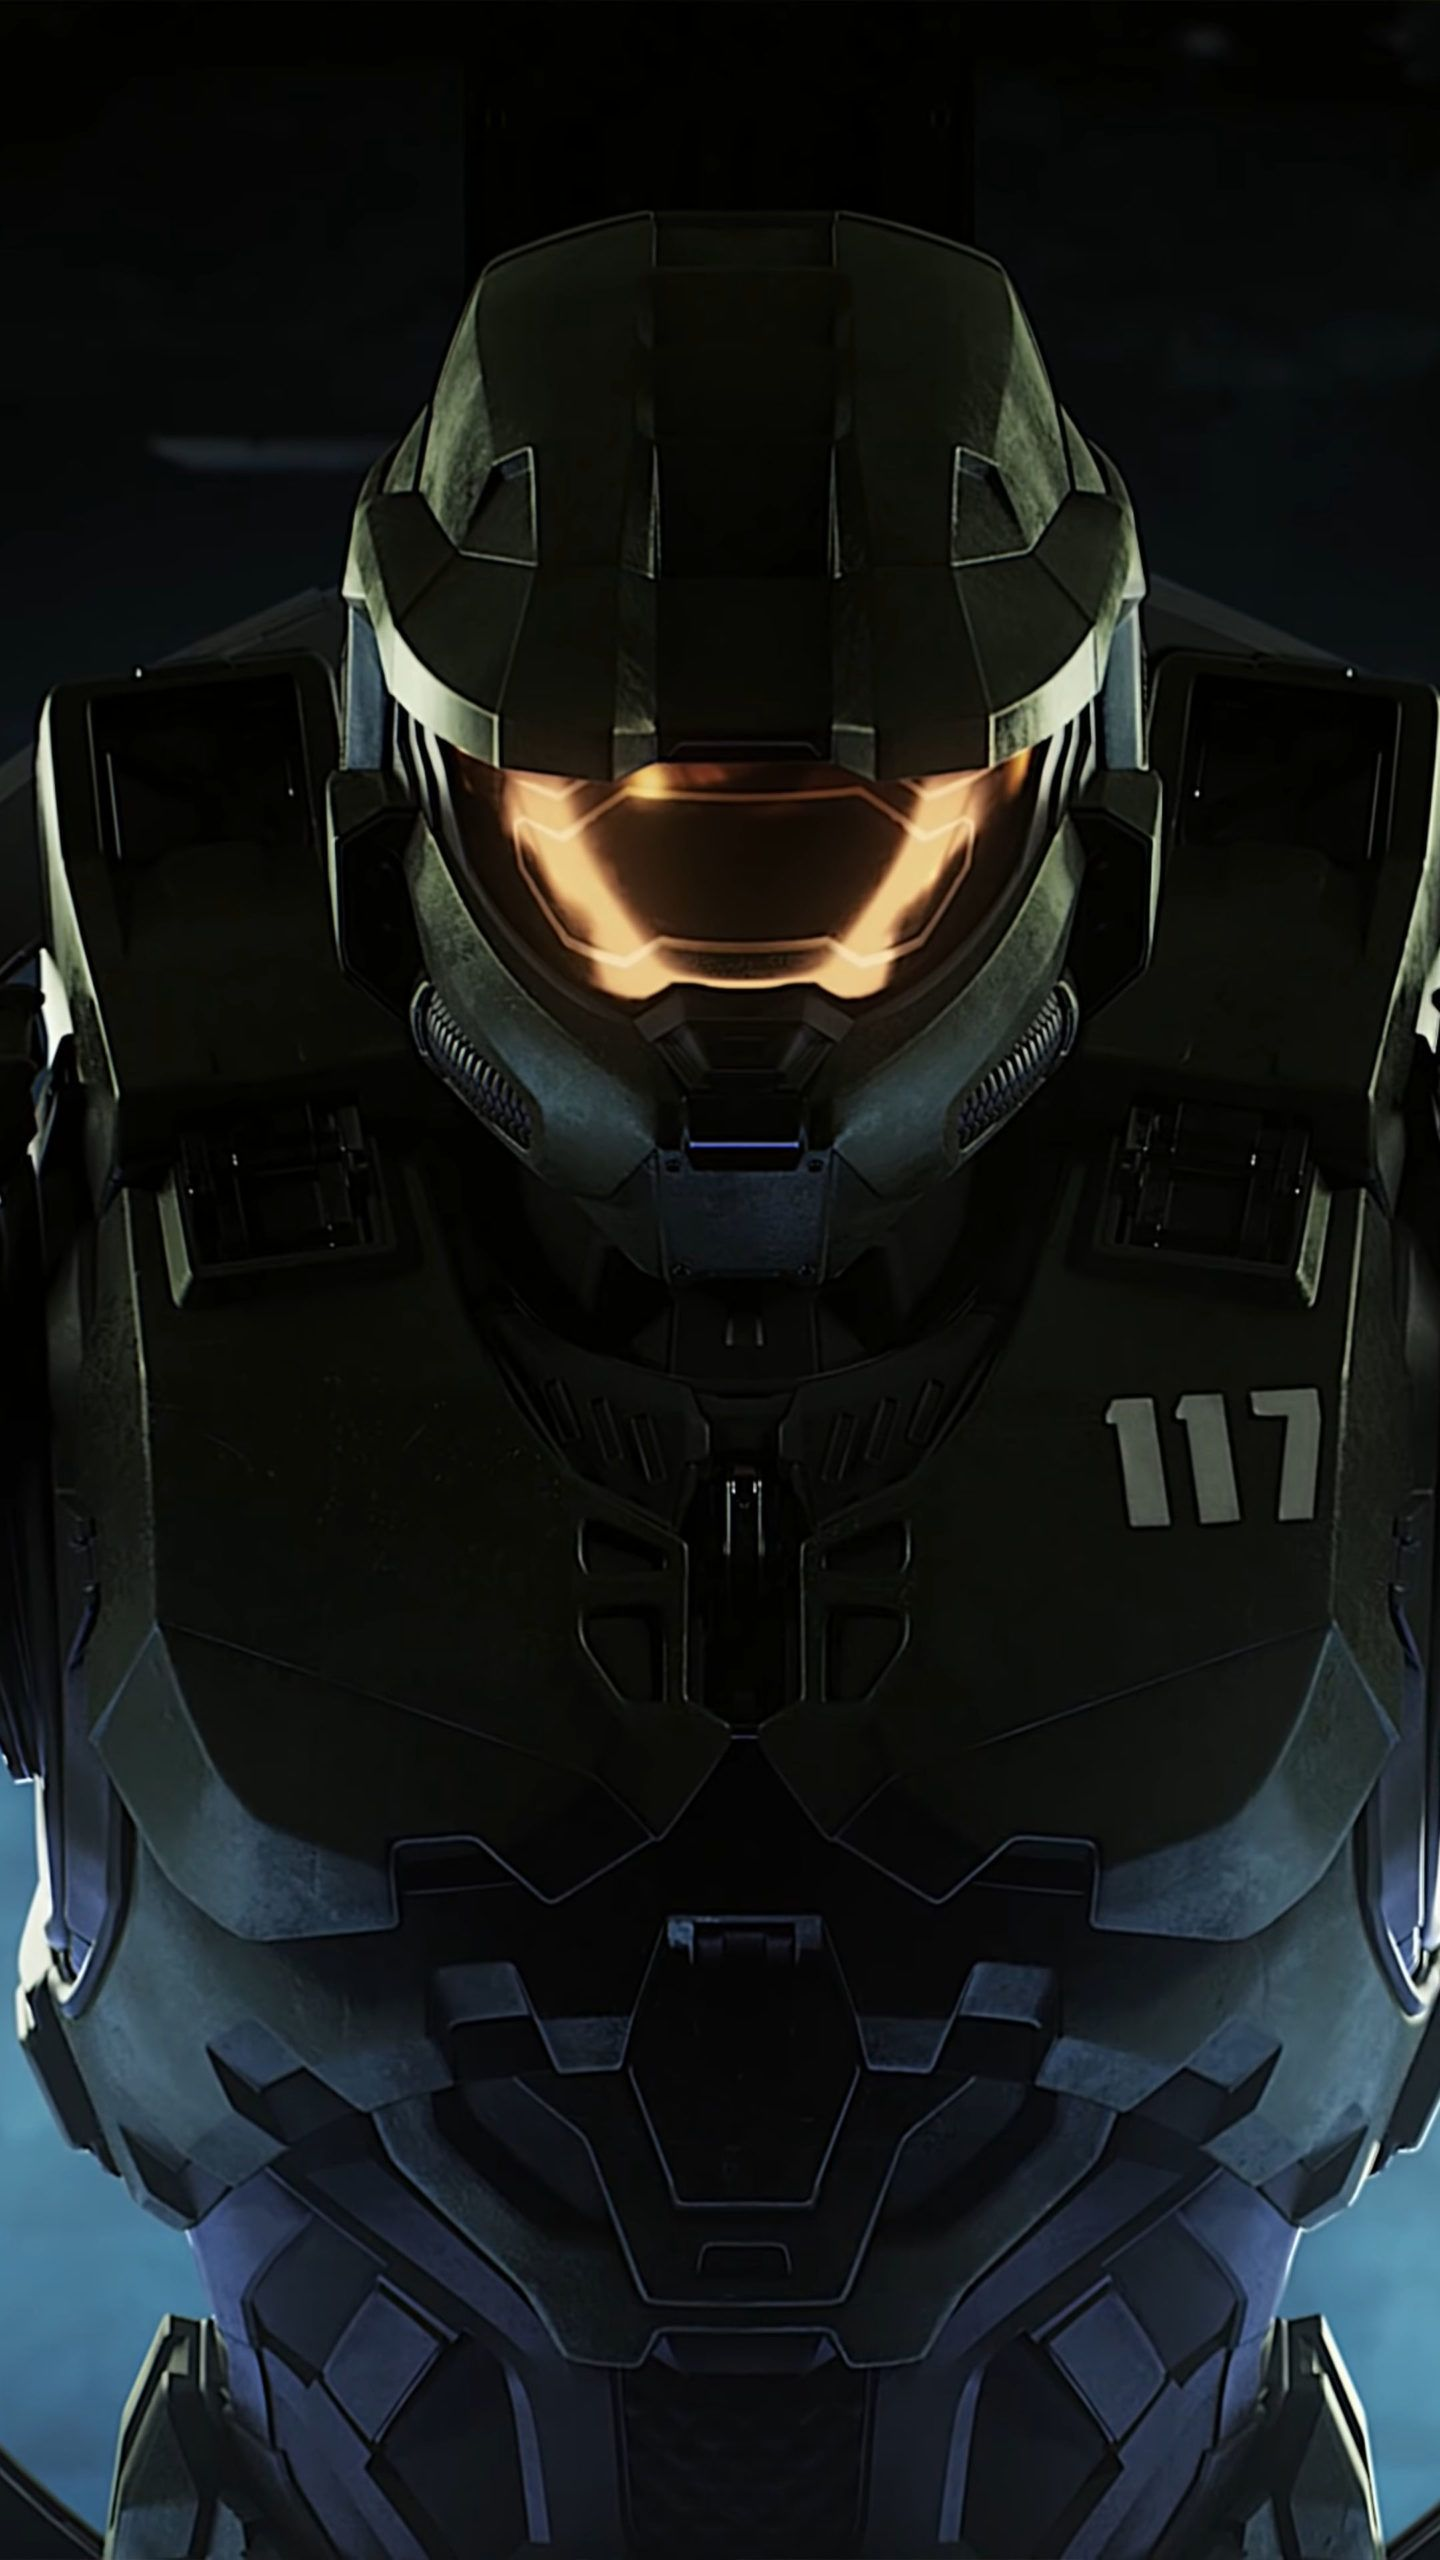 Halo Infinite 117 4k Ultra Hd Mobile Wallpaper In 2020 Halo Halo Game Wallpaper